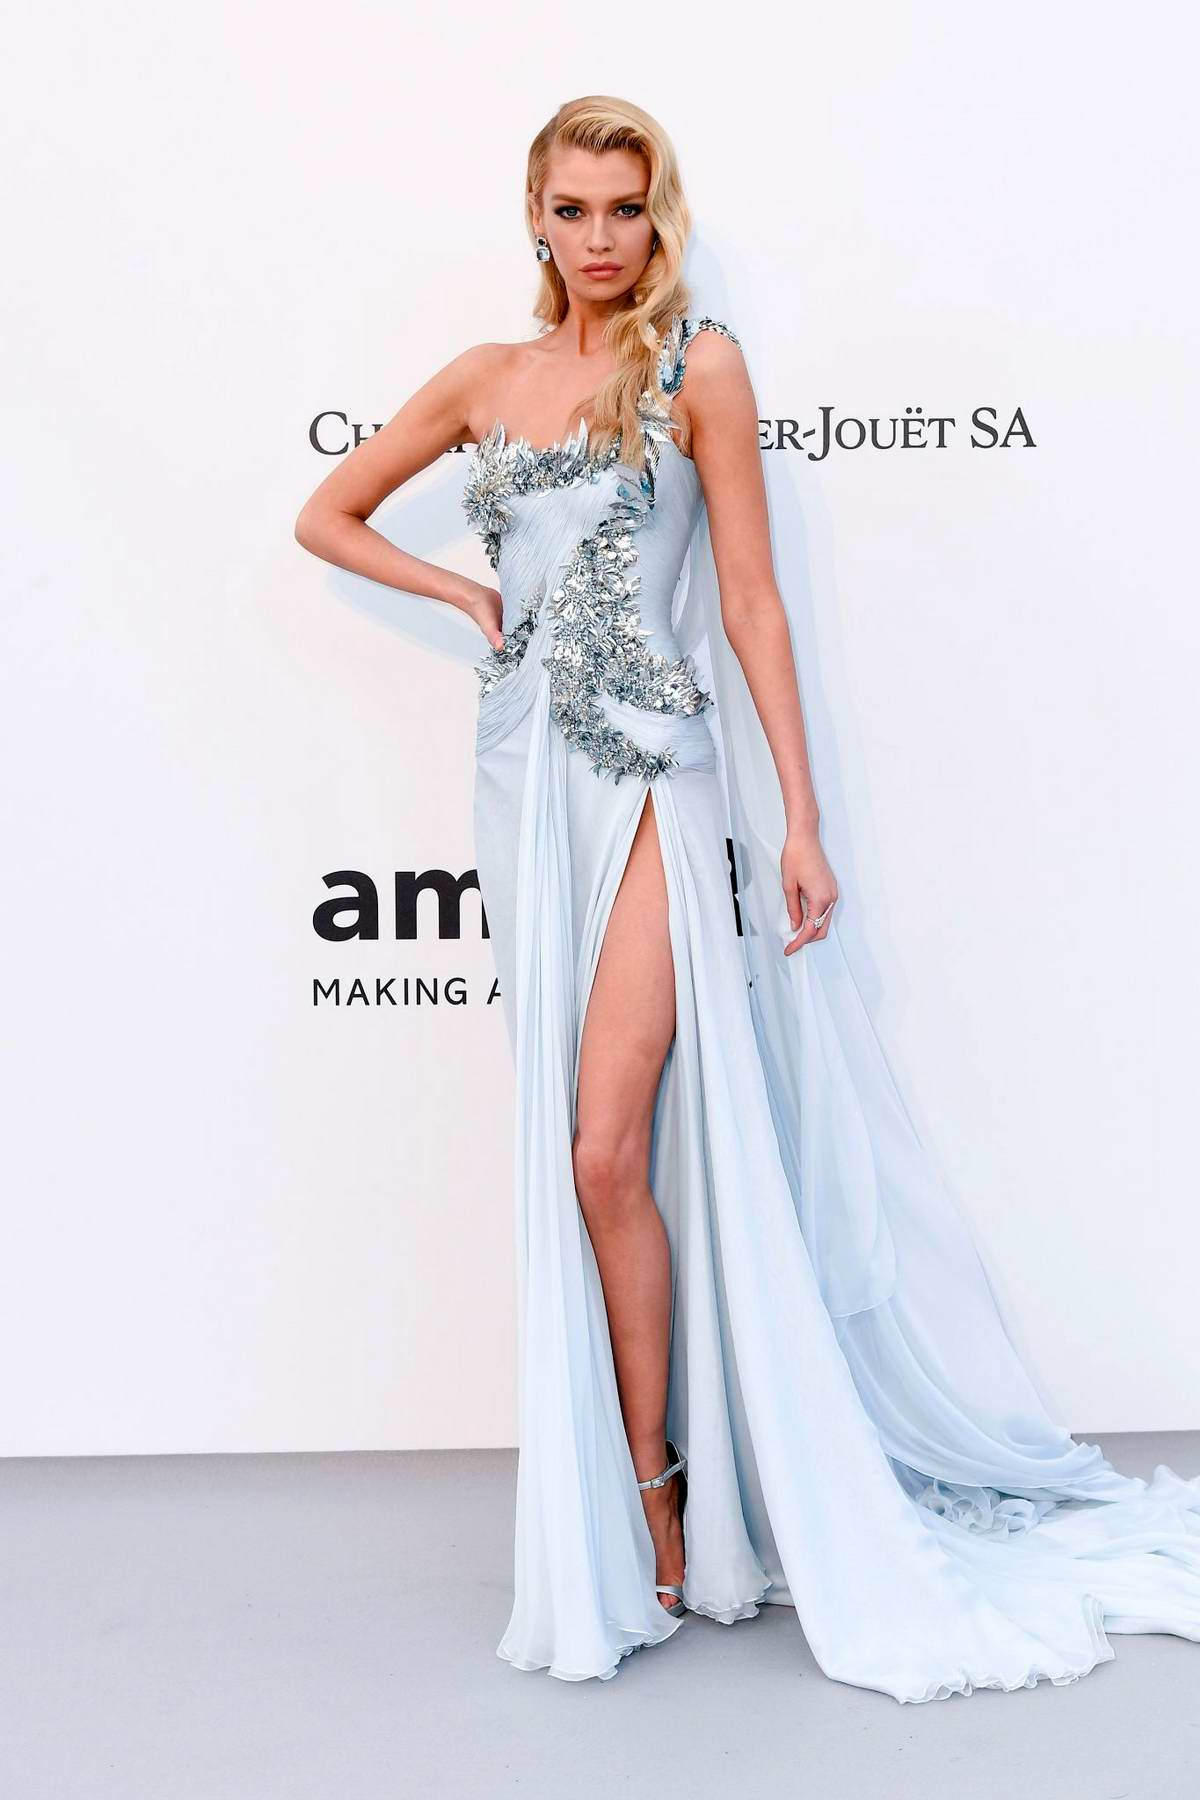 Stella Maxwell attends the 26th amfAR Gala held at Hotel du Cap-Eden-Roc during the 72nd annual Cannes Film Festival in Cannes, France